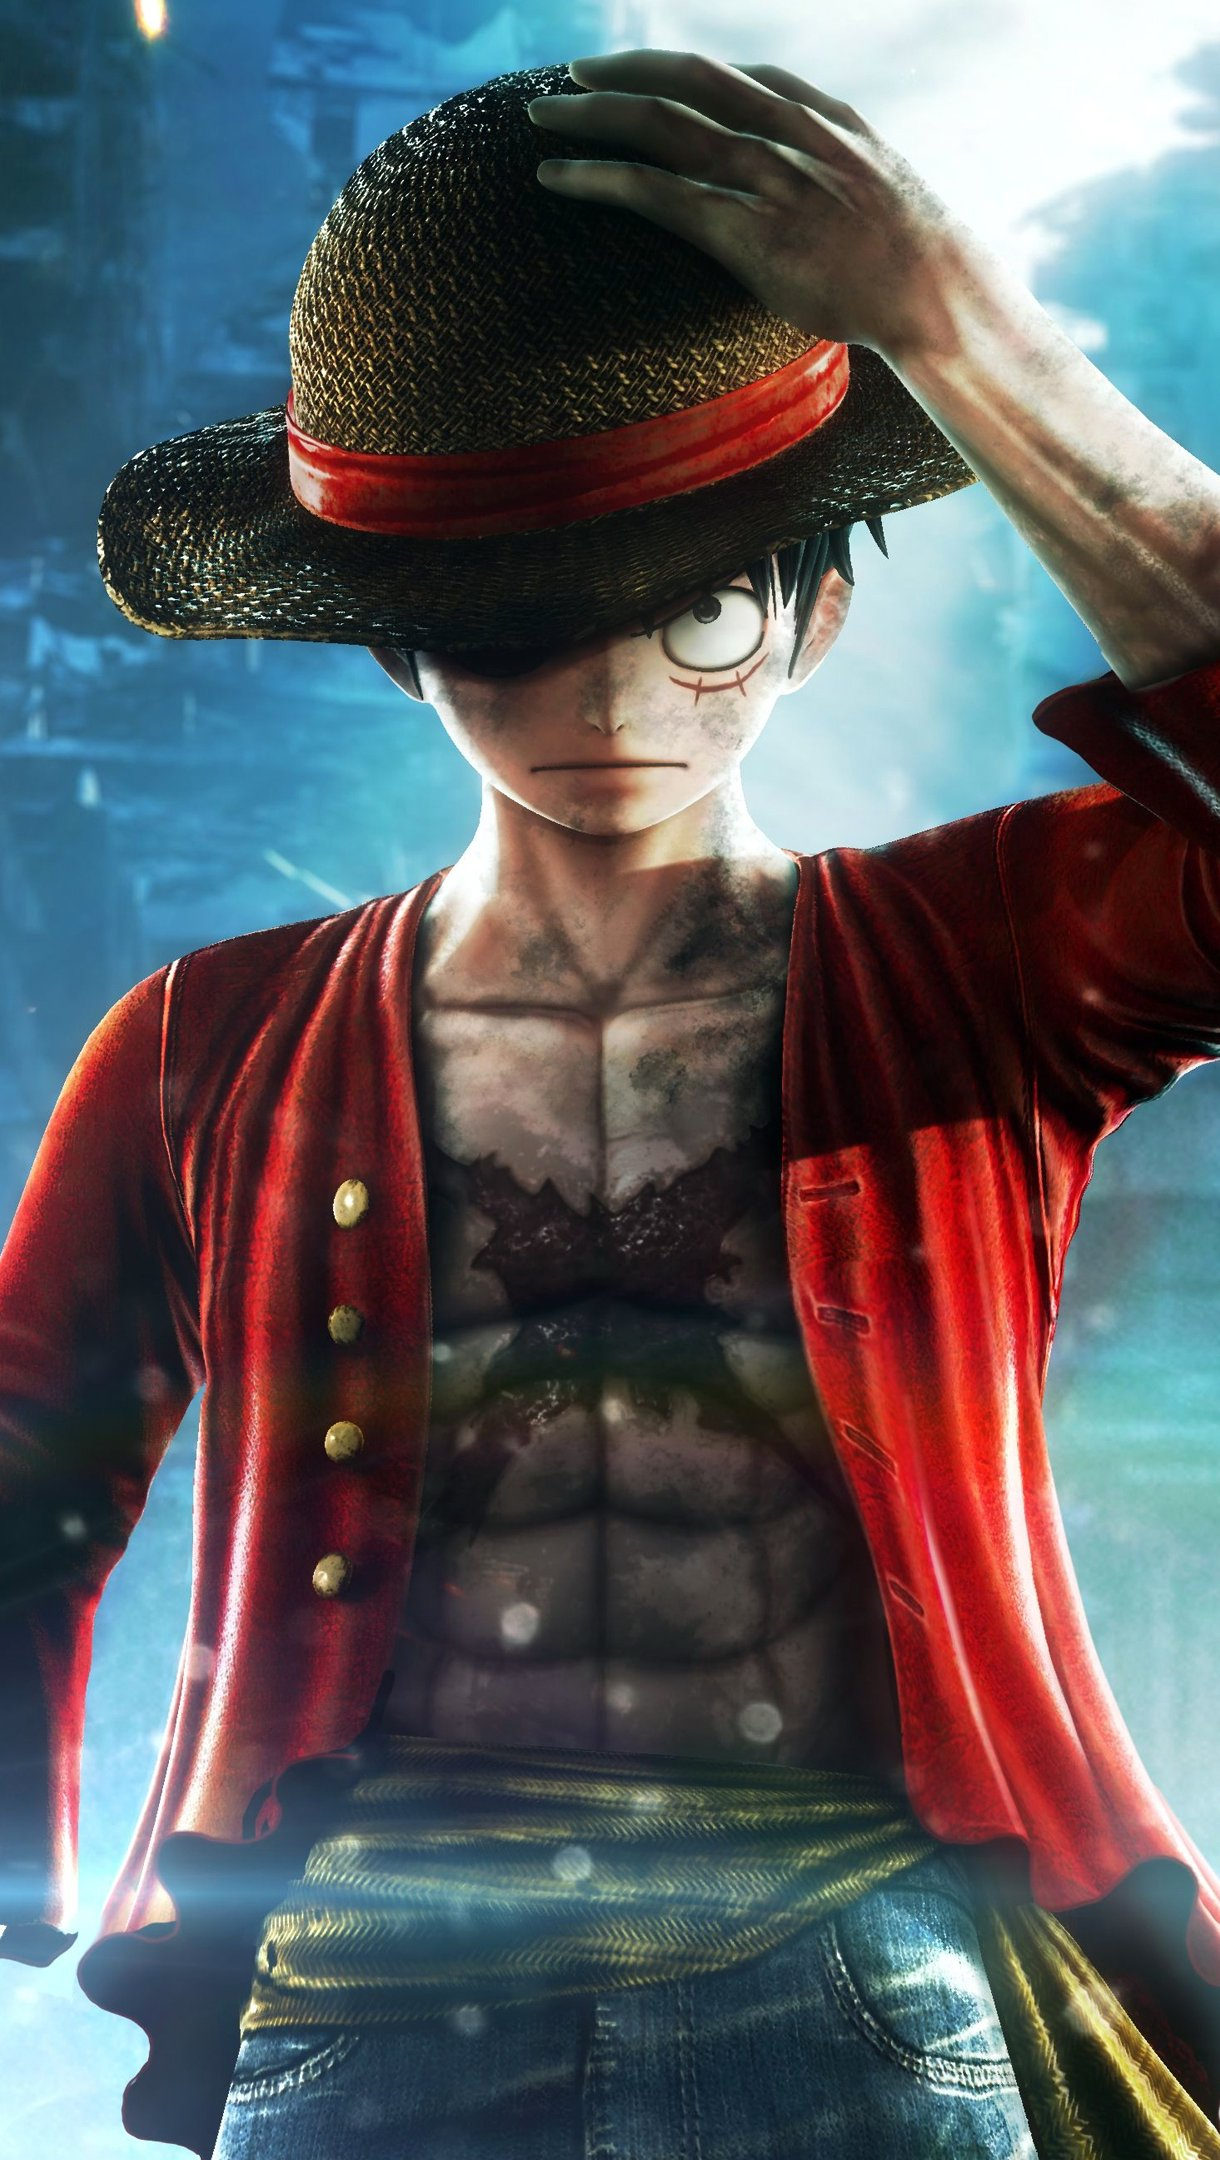 Monkey D Luffy In Jump Force Wallpaper 4k Ultra Hd Id 3710